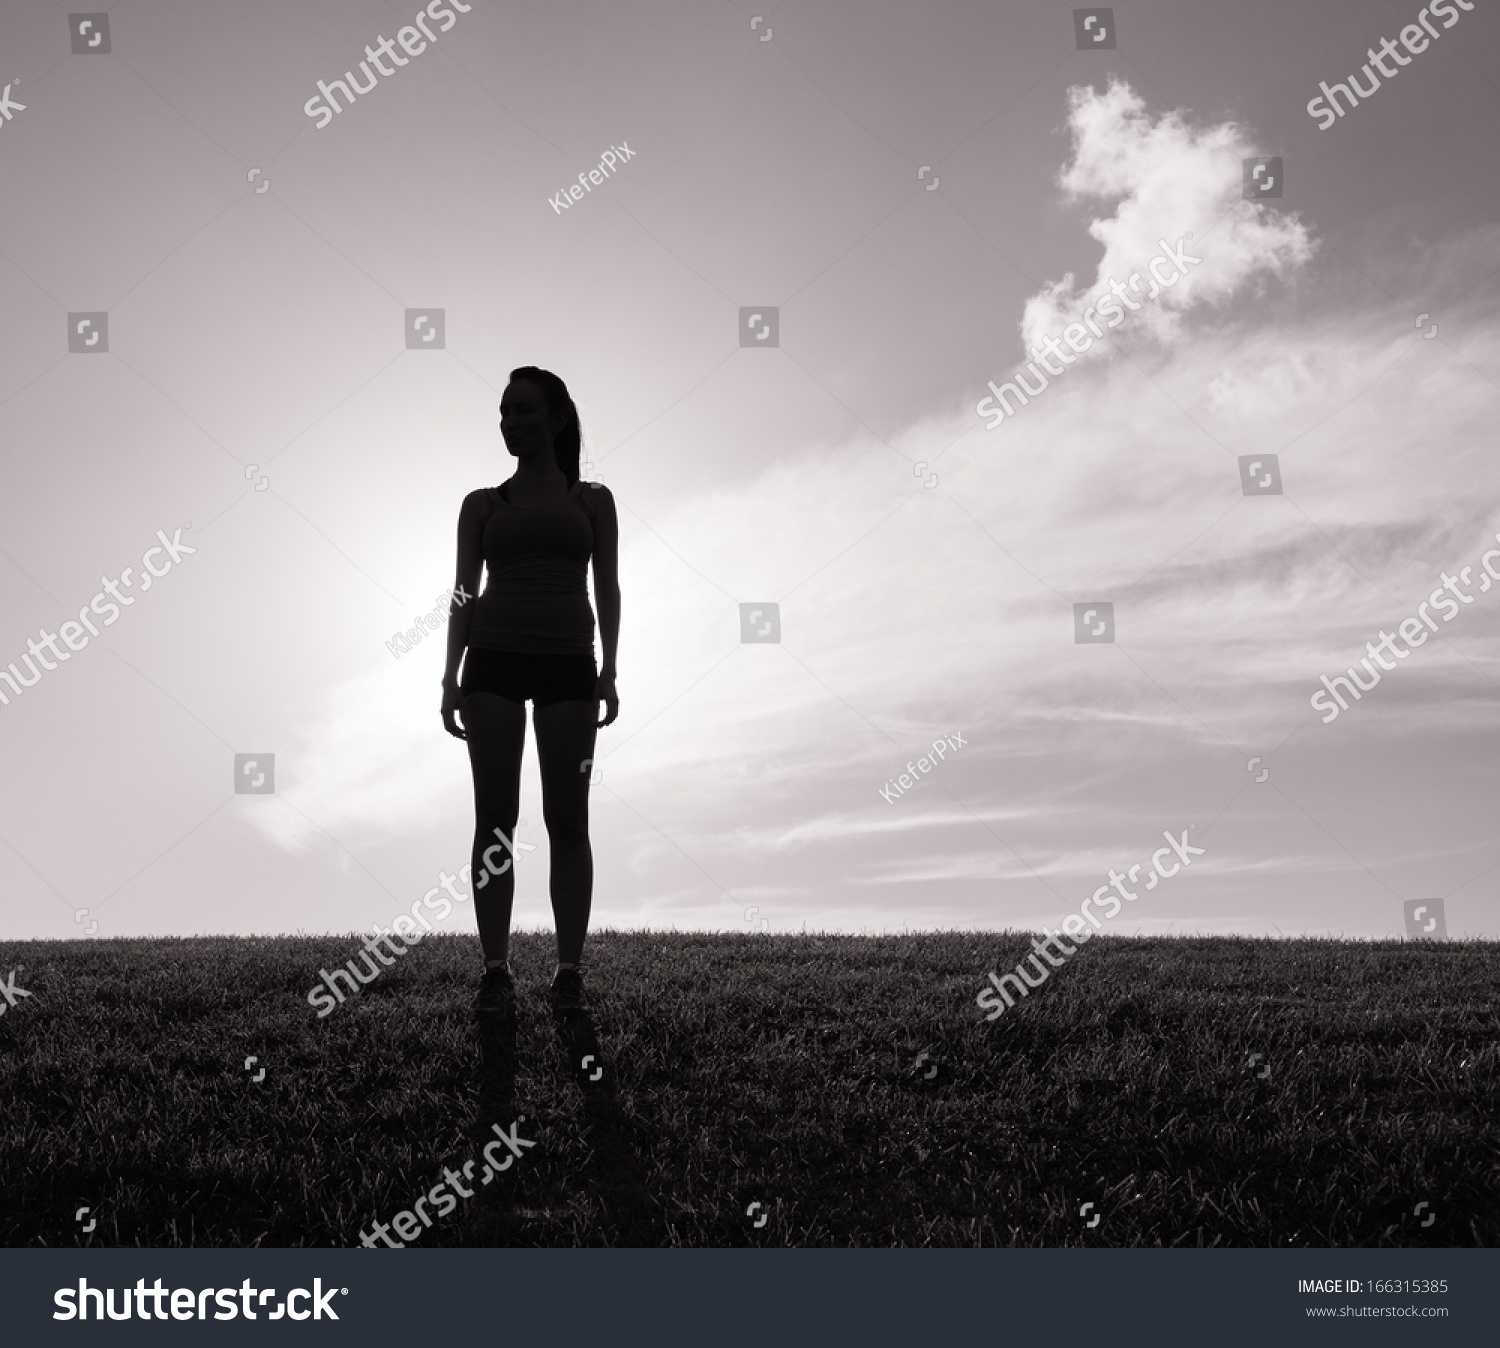 Black And White Lonely Pictures - Impremedianet-9868